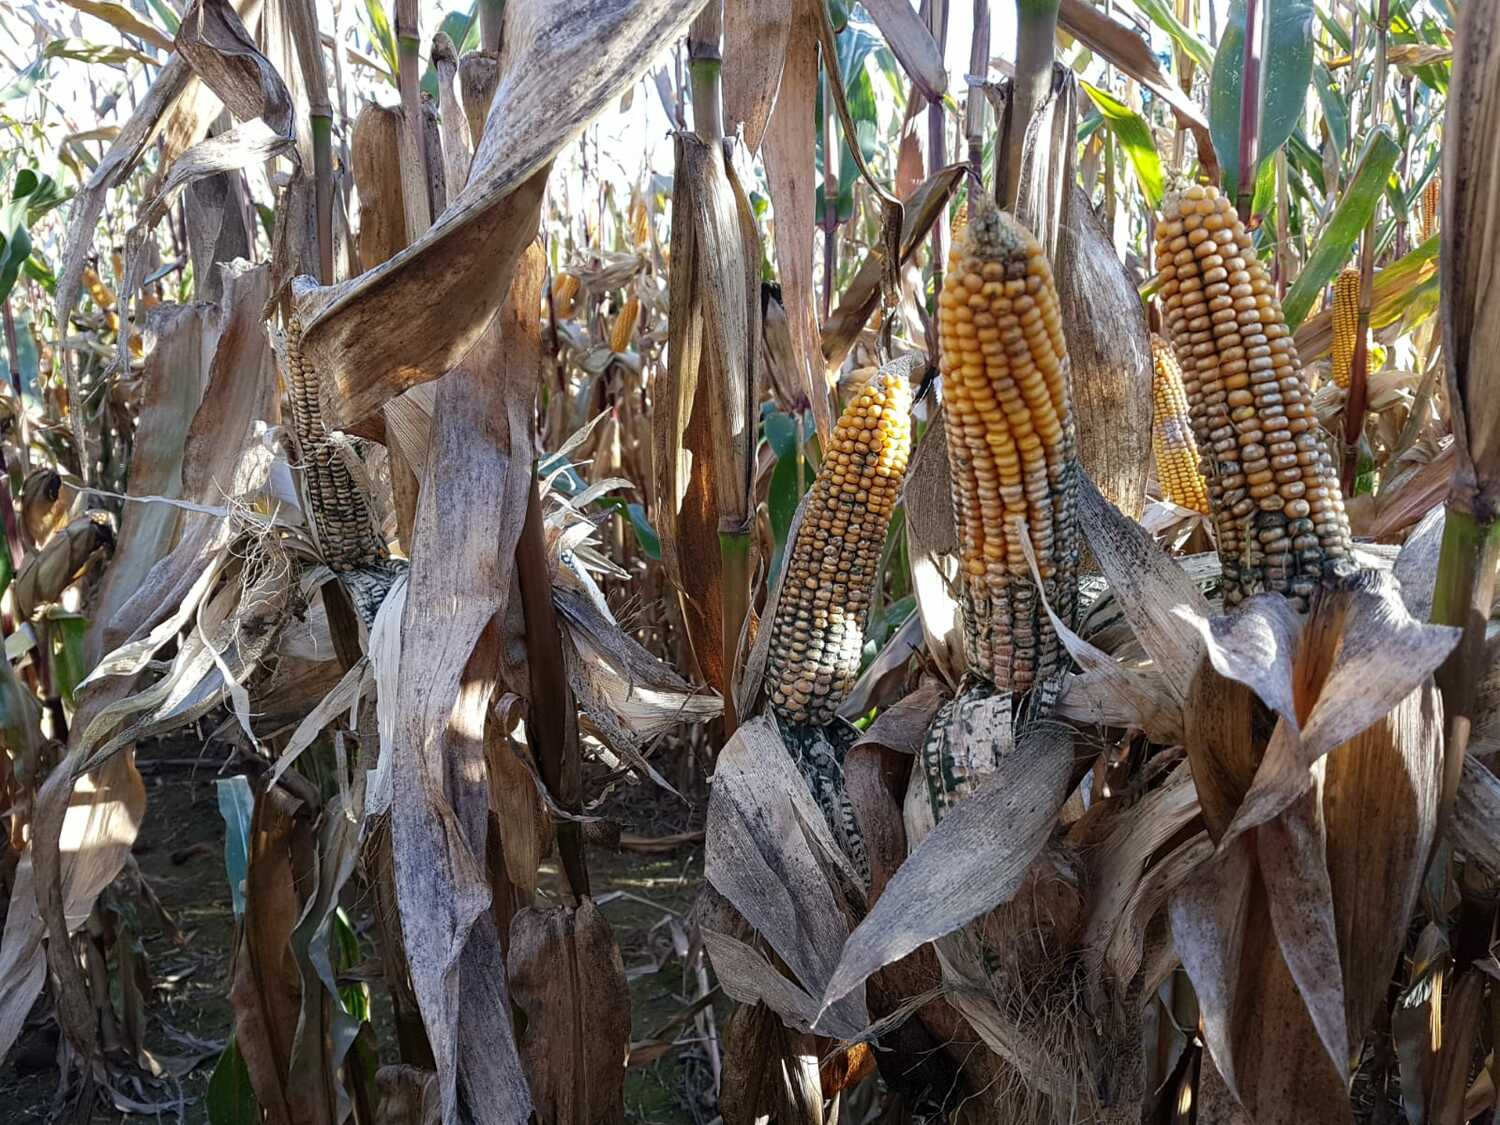 Researchers at the University of Göttingen have discovered that the spores of the fungus Trichoderma, which is contained in some organic plant protection products, can cause severe cob rot in maize (corn).